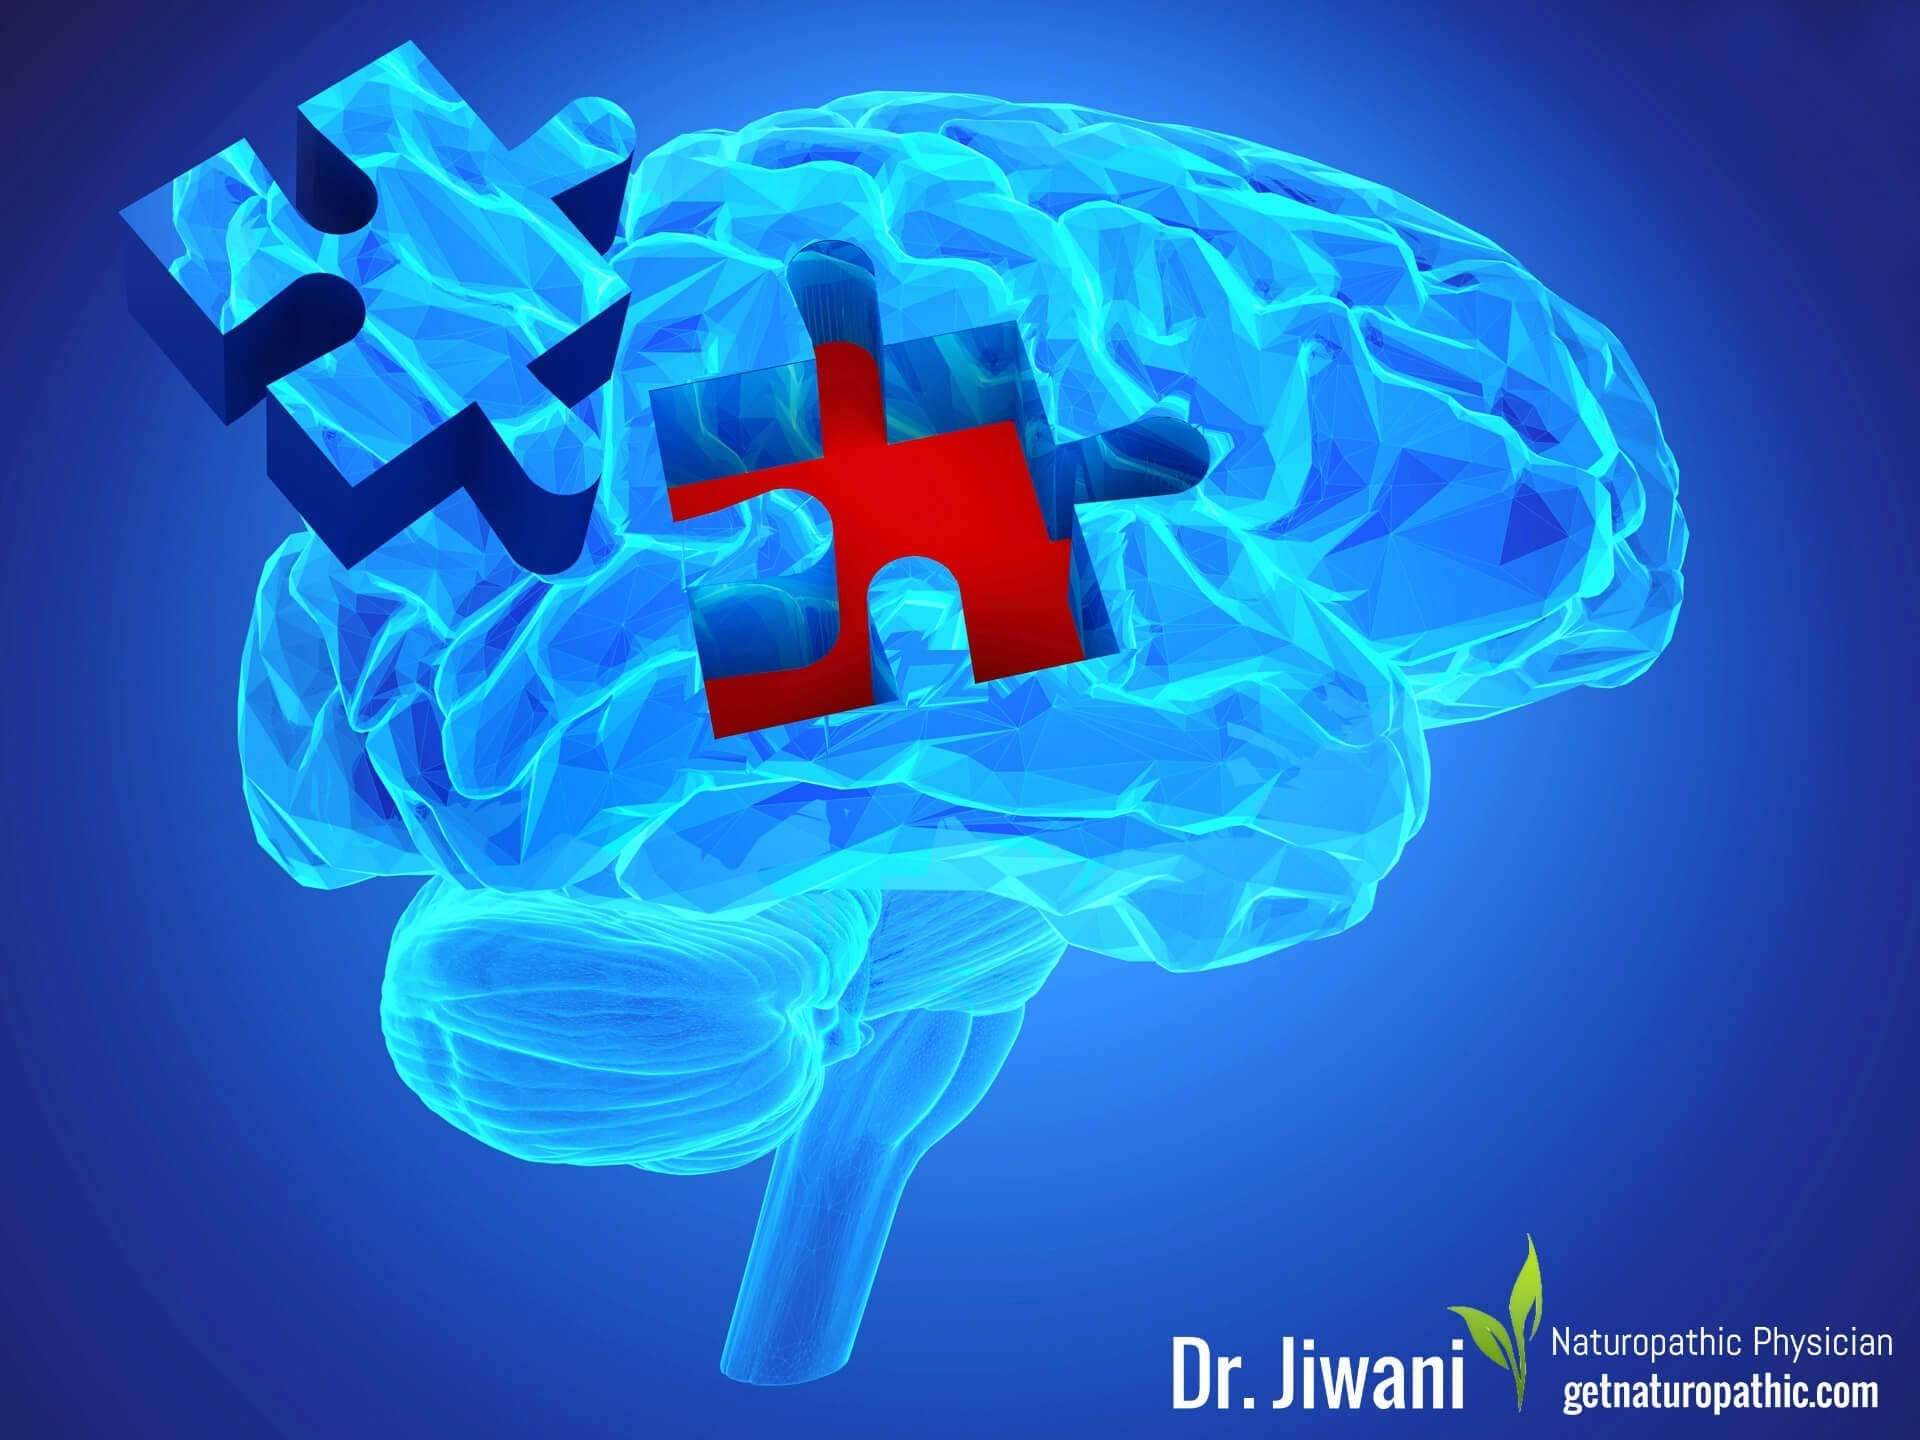 DrJiwani Intermittent Fasting for Health, Energy & Weight Loss Brain Function* | Dr. Jiwani's Naturopathic Nuggets Blog